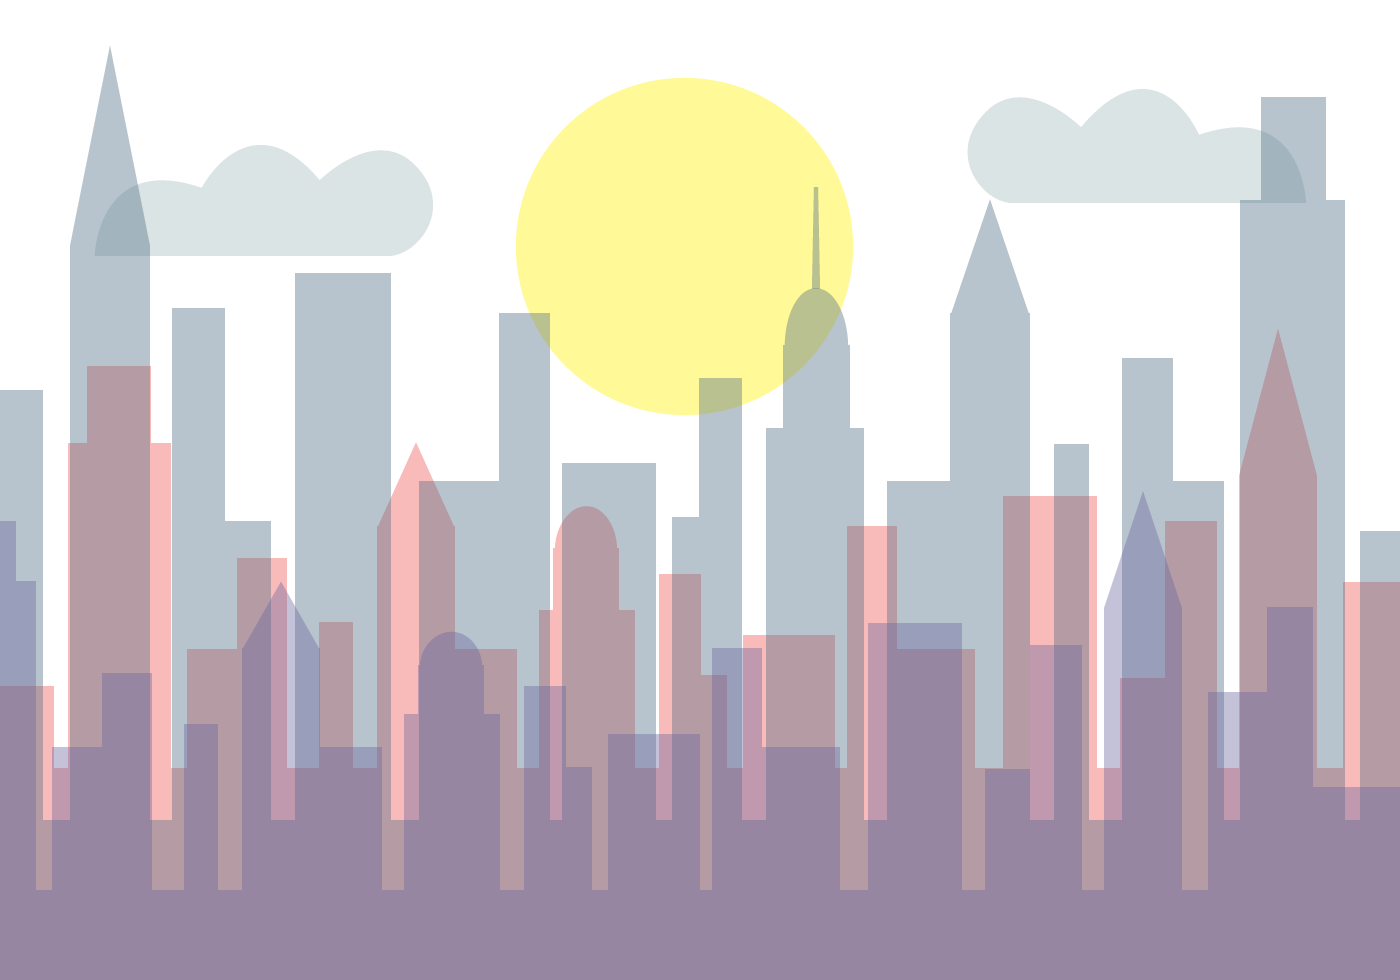 Free Cityscape Vector Download Free Vector Art Stock Interiors Inside Ideas Interiors design about Everything [magnanprojects.com]